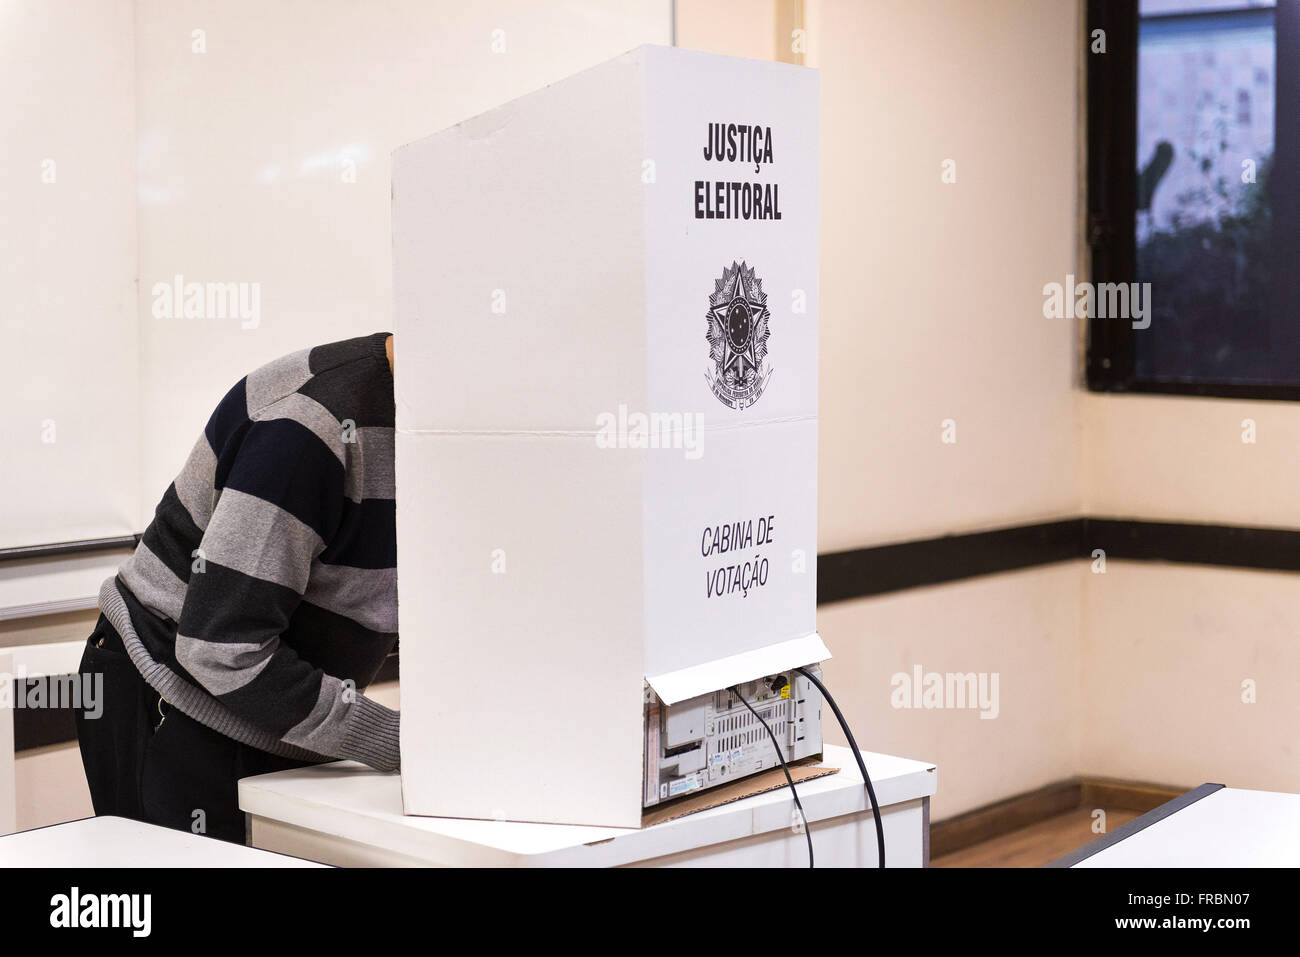 Voter electronic voting in urn at PUC-Rio - Elections 2014 - Stock Image